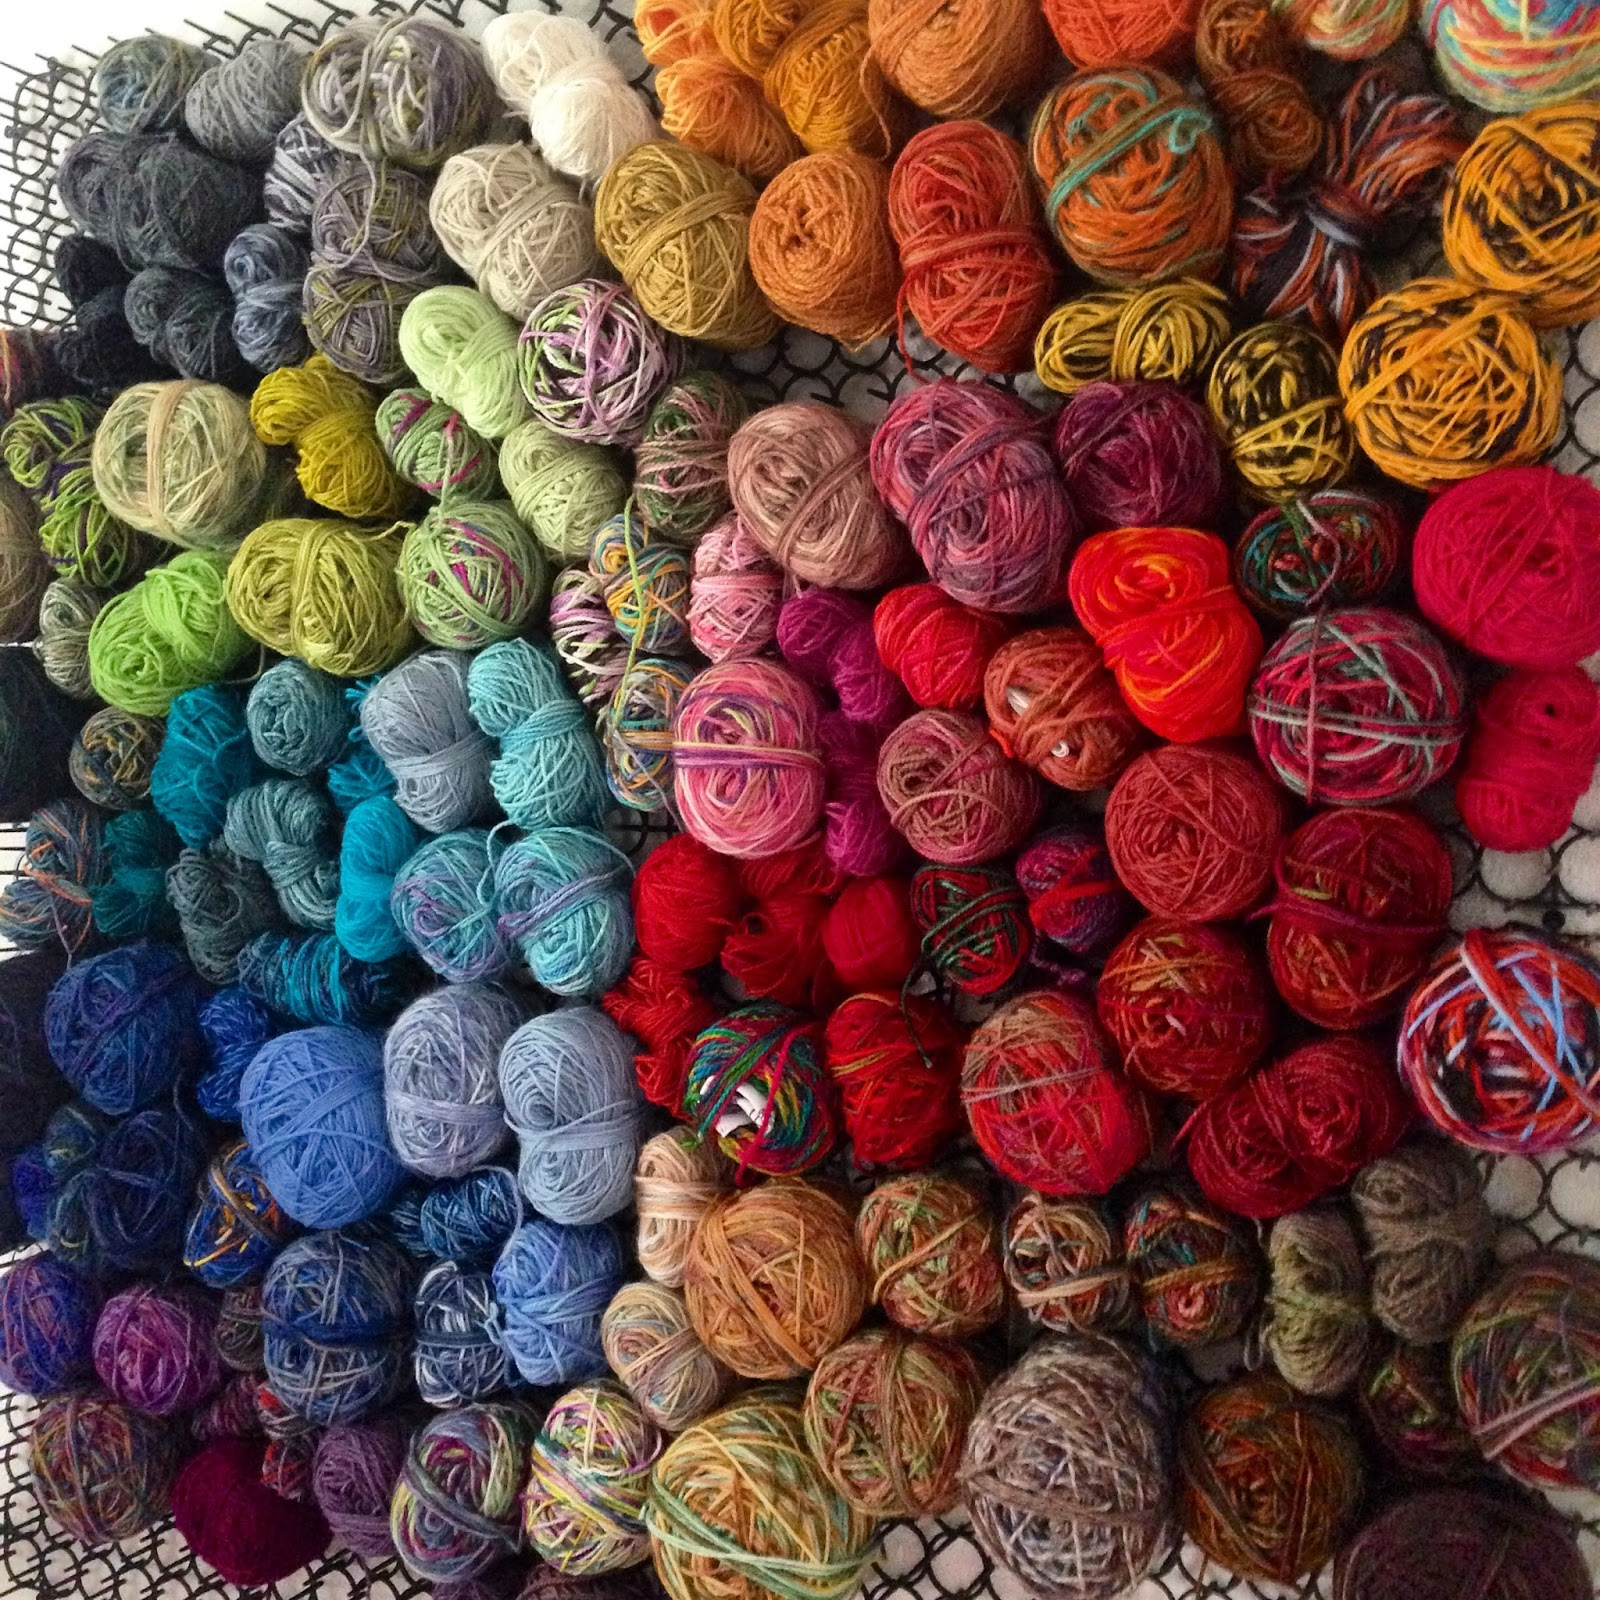 How To Knit Stitches On Scrap Yarn : Creative with clay: Pottery by Charan Sachar: Scrap Sock Yarn Blanket